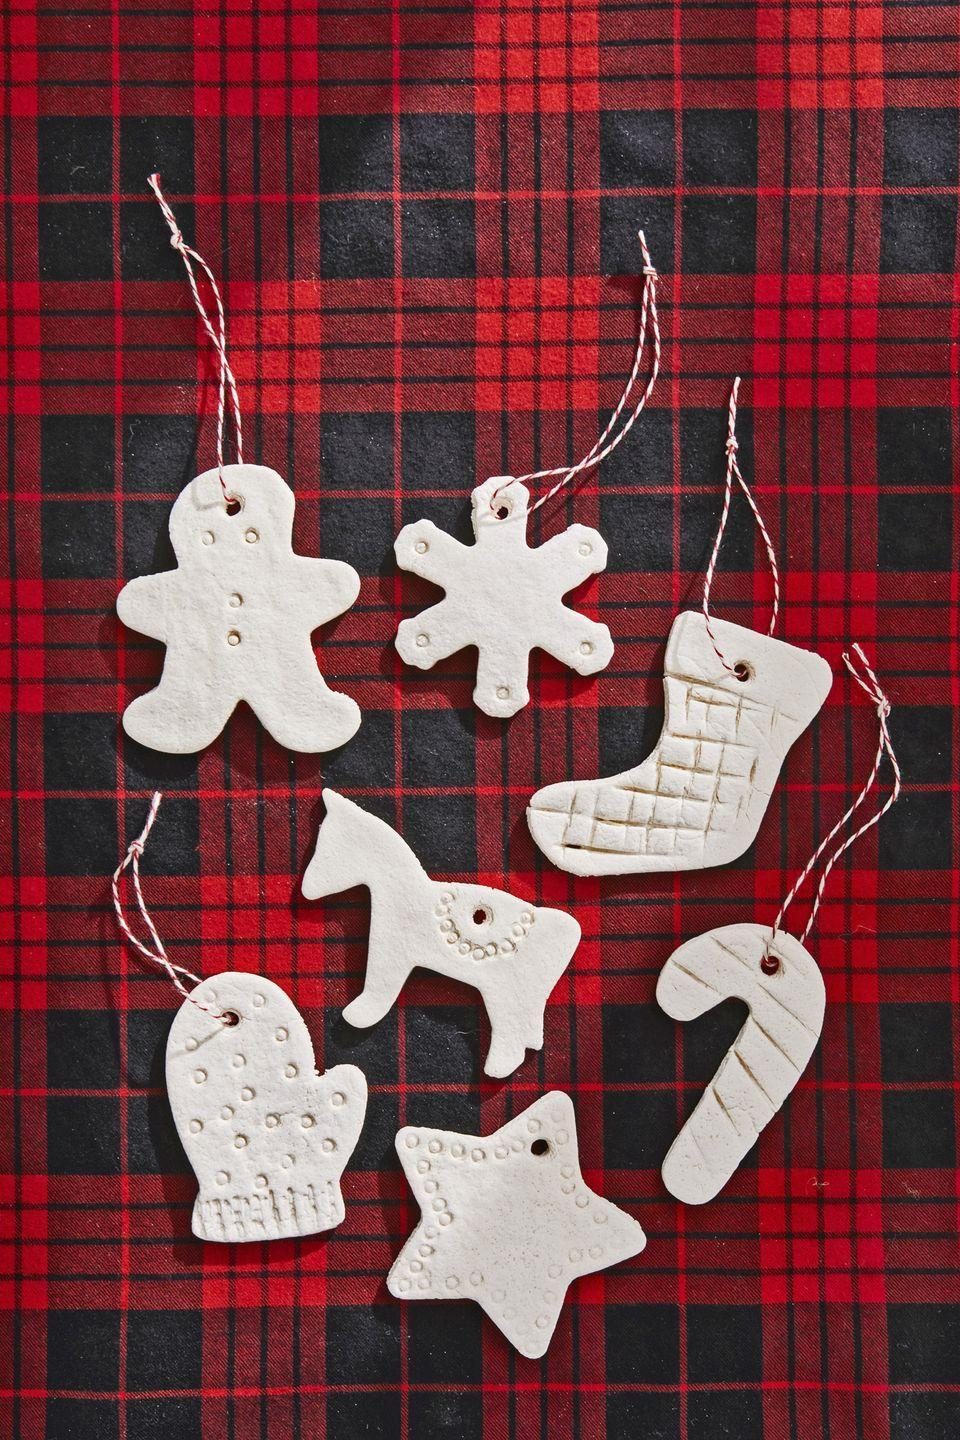 "<p><a href=""https://www.countryliving.com/diy-crafts/g4965/salt-dough-ornament-ideas/"" rel=""nofollow noopener"" target=""_blank"" data-ylk=""slk:Salt dough ornaments"" class=""link rapid-noclick-resp"">Salt dough ornaments</a> are a classic craft that your kids will love to make. For the perfect ones: Combine 4 cups all-purpose flour, 1 cup salt, and 1 1/2 cups of warm water in a mixing bowl. Knead until the dough is firm and smooth. Roll out dough and cut desired shapes (use a straw to poke a hole for hanging). Bake at 300°F until dry, approximately 1 hour; cool completely.</p><p><a class=""link rapid-noclick-resp"" href=""https://www.amazon.com/Resinta-Christmas-Natural-Wrapping-Totally/dp/B077M9HVWK?tag=syn-yahoo-20&ascsubtag=%5Bartid%7C10050.g.1070%5Bsrc%7Cyahoo-us"" rel=""nofollow noopener"" target=""_blank"" data-ylk=""slk:SHOP TWINE"">SHOP TWINE</a></p>"